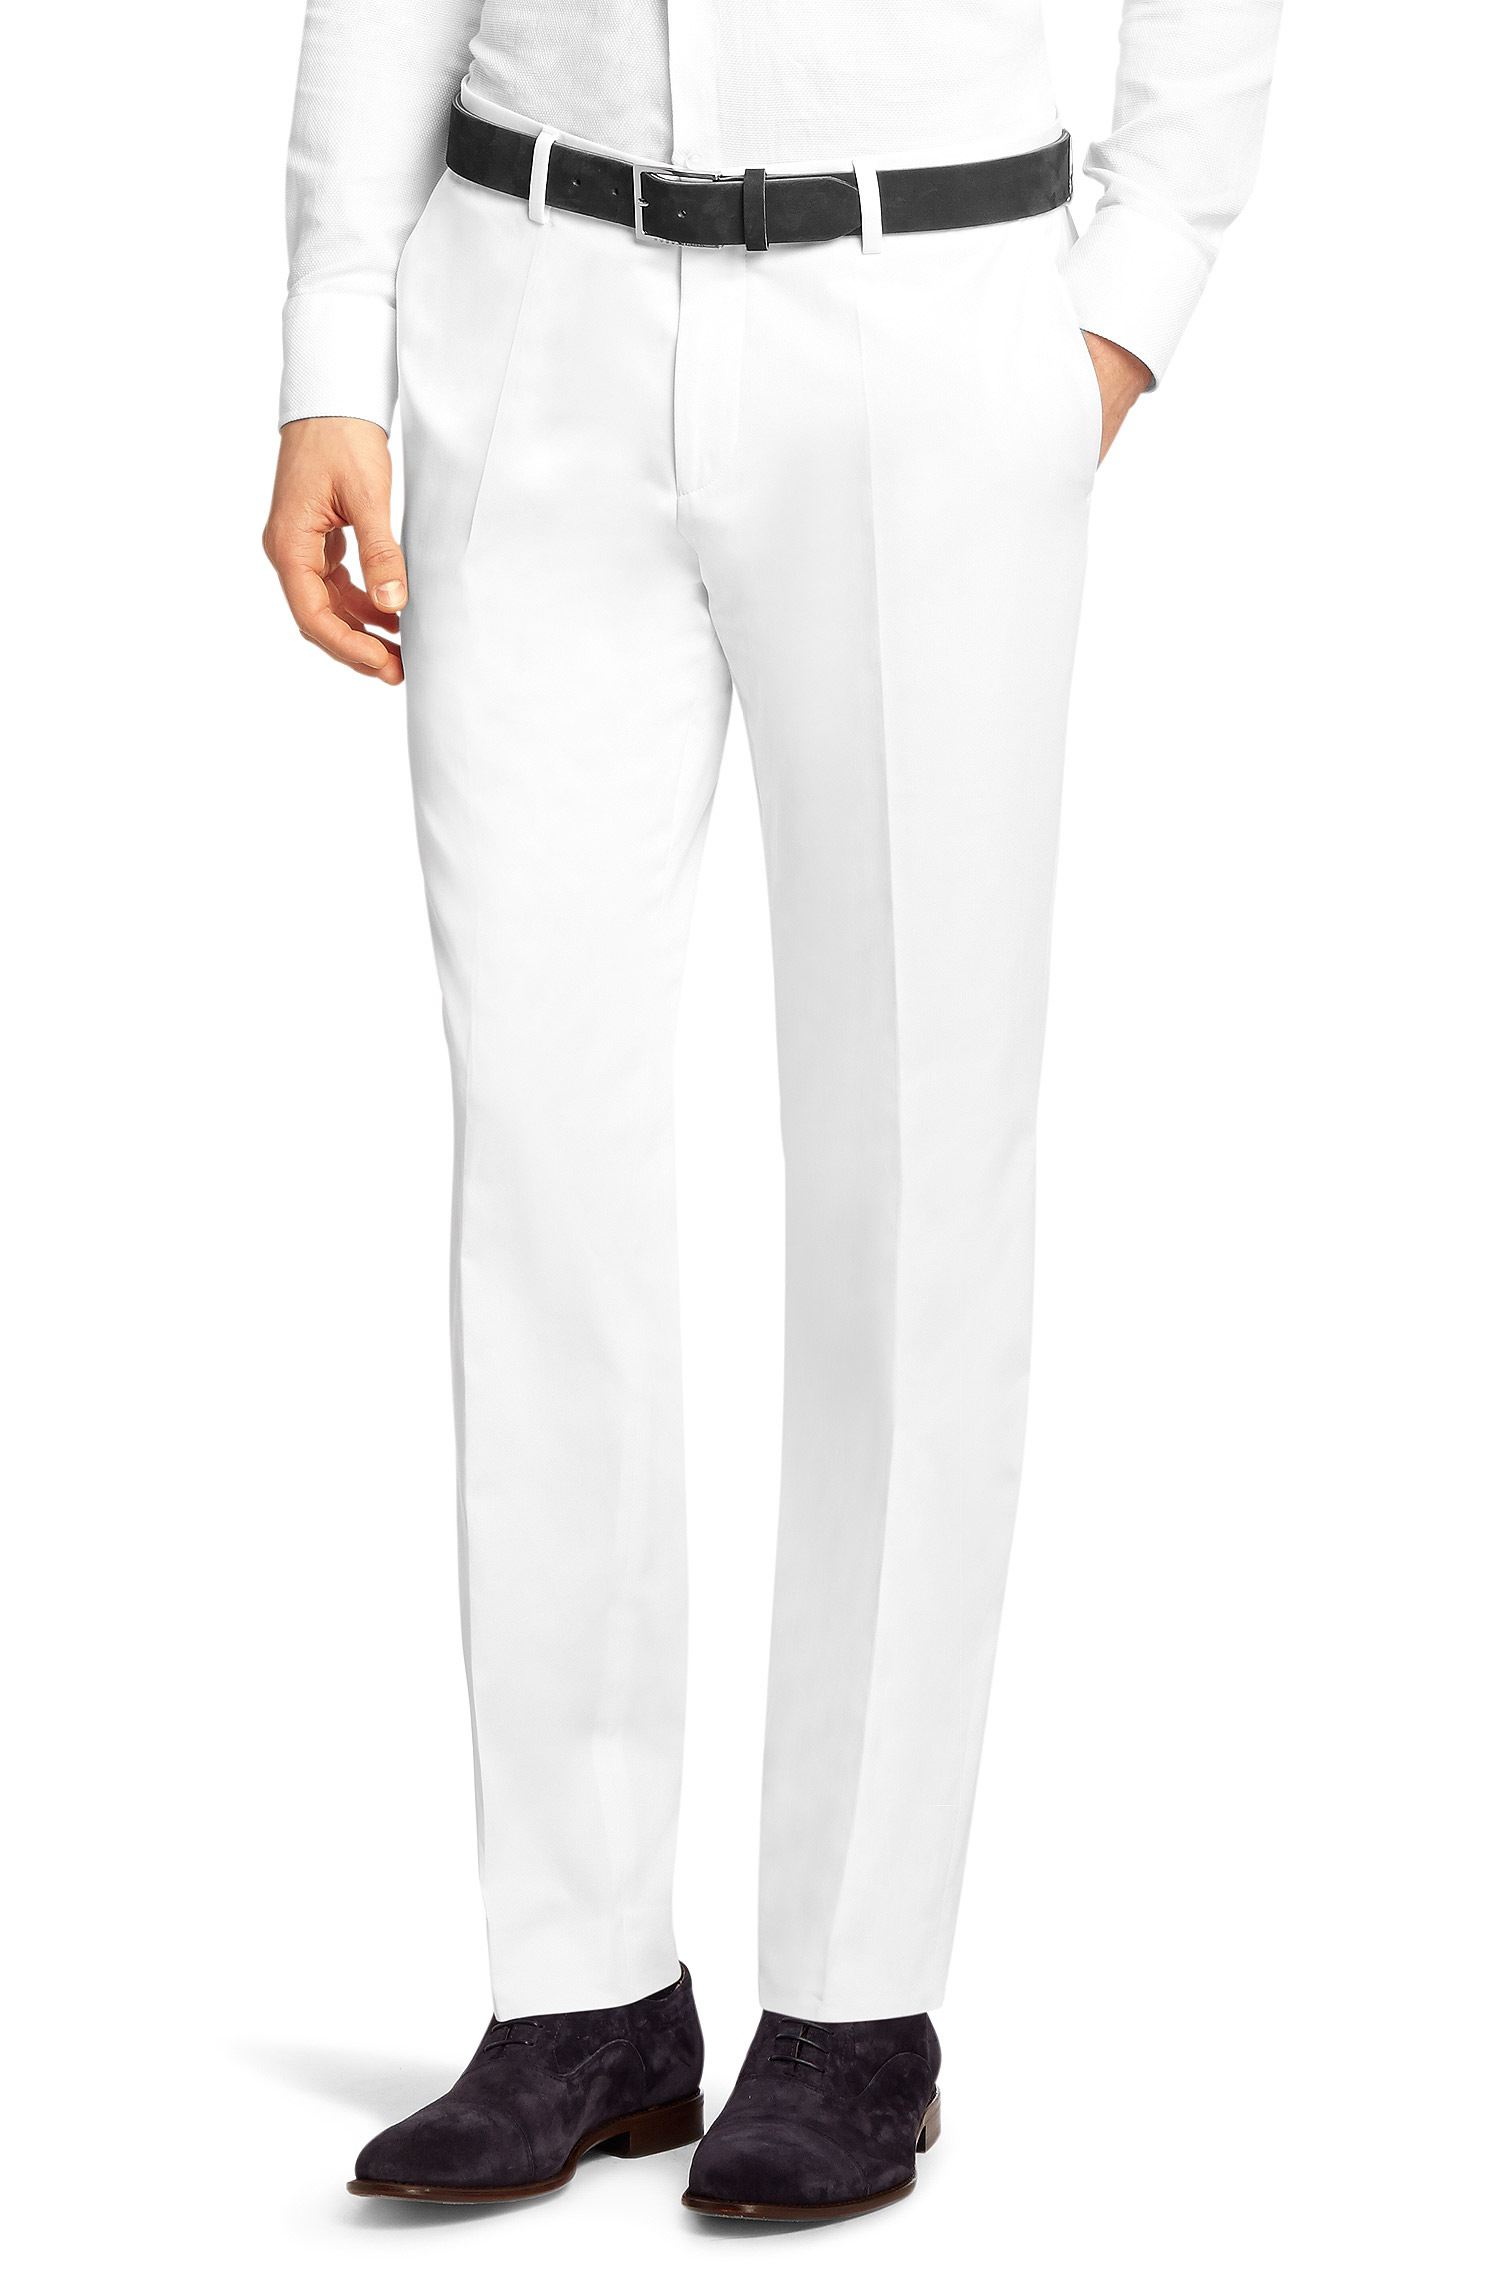 Petite Dress Pants You'll love all the styles in our selection of petite pants. Go business casual in a pair of slacks paired with a pretty petite blouse or add bold colors to your collection for stand-out style.